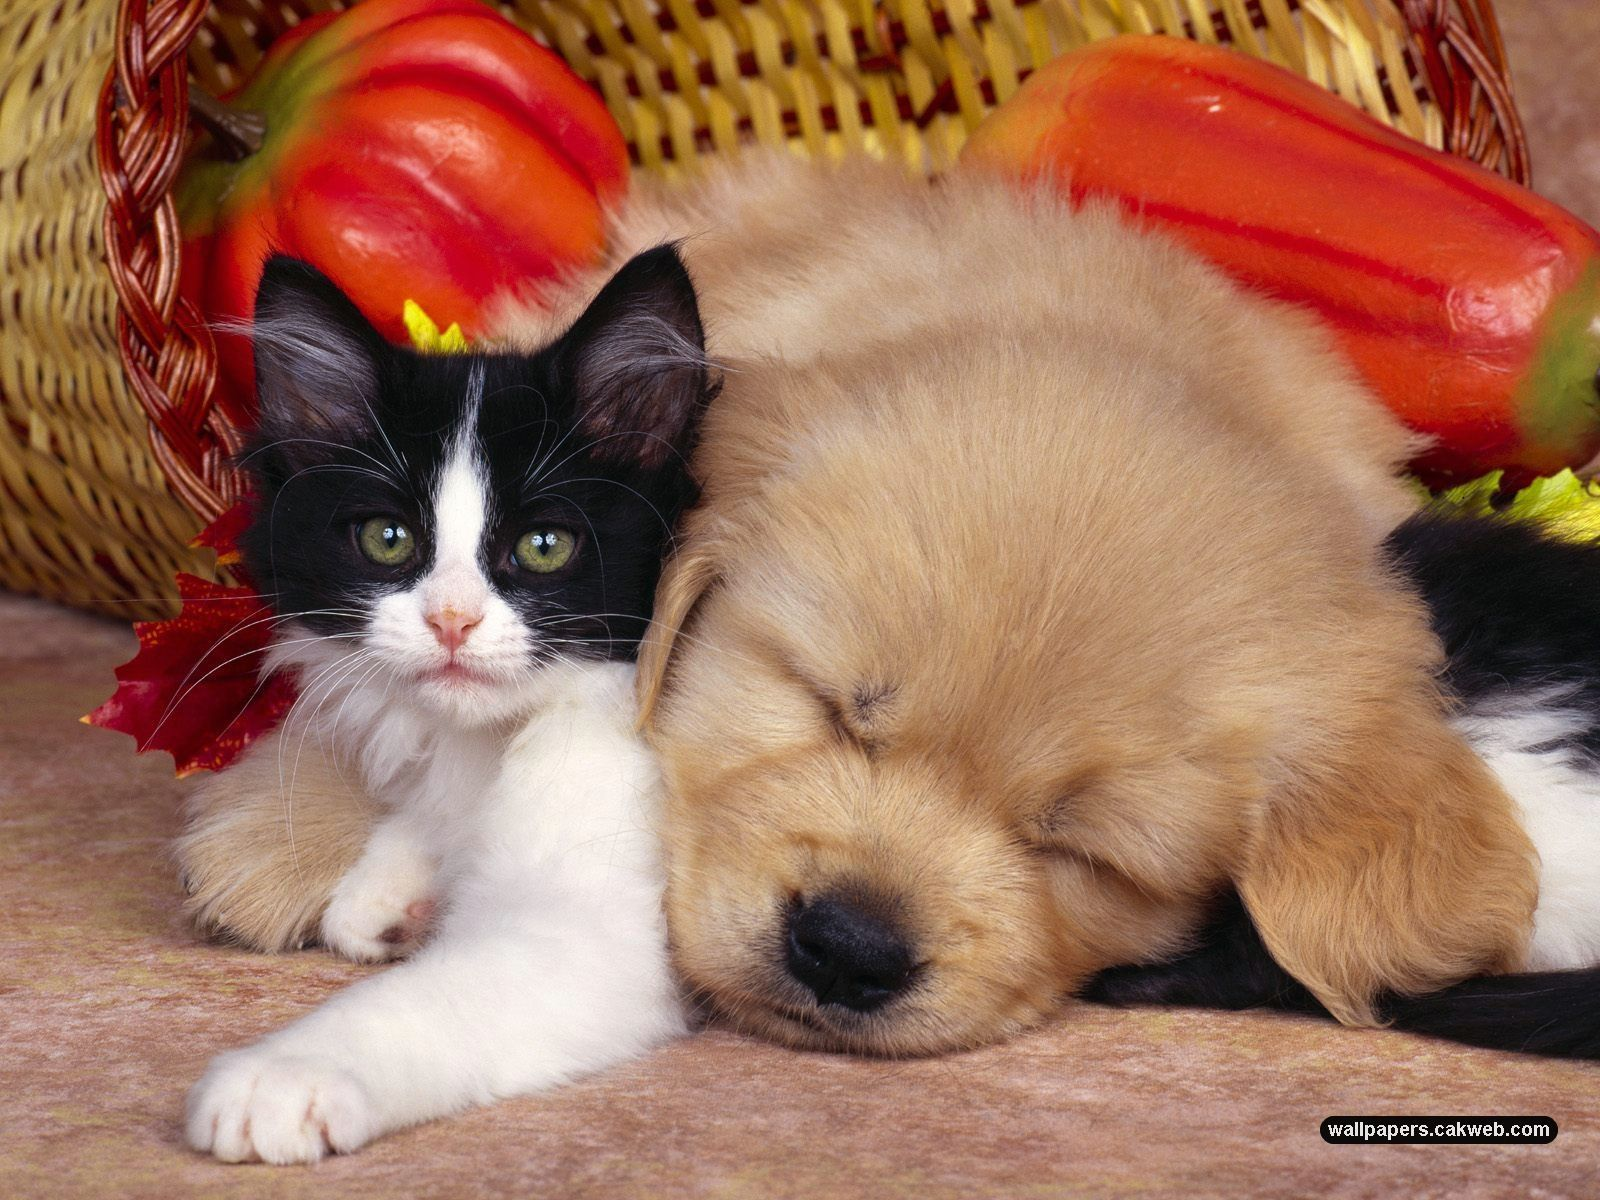 Astounding funny cats and dogs pictures to her to her with